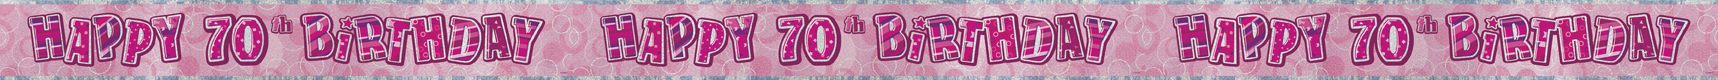 70th birthday banner pink